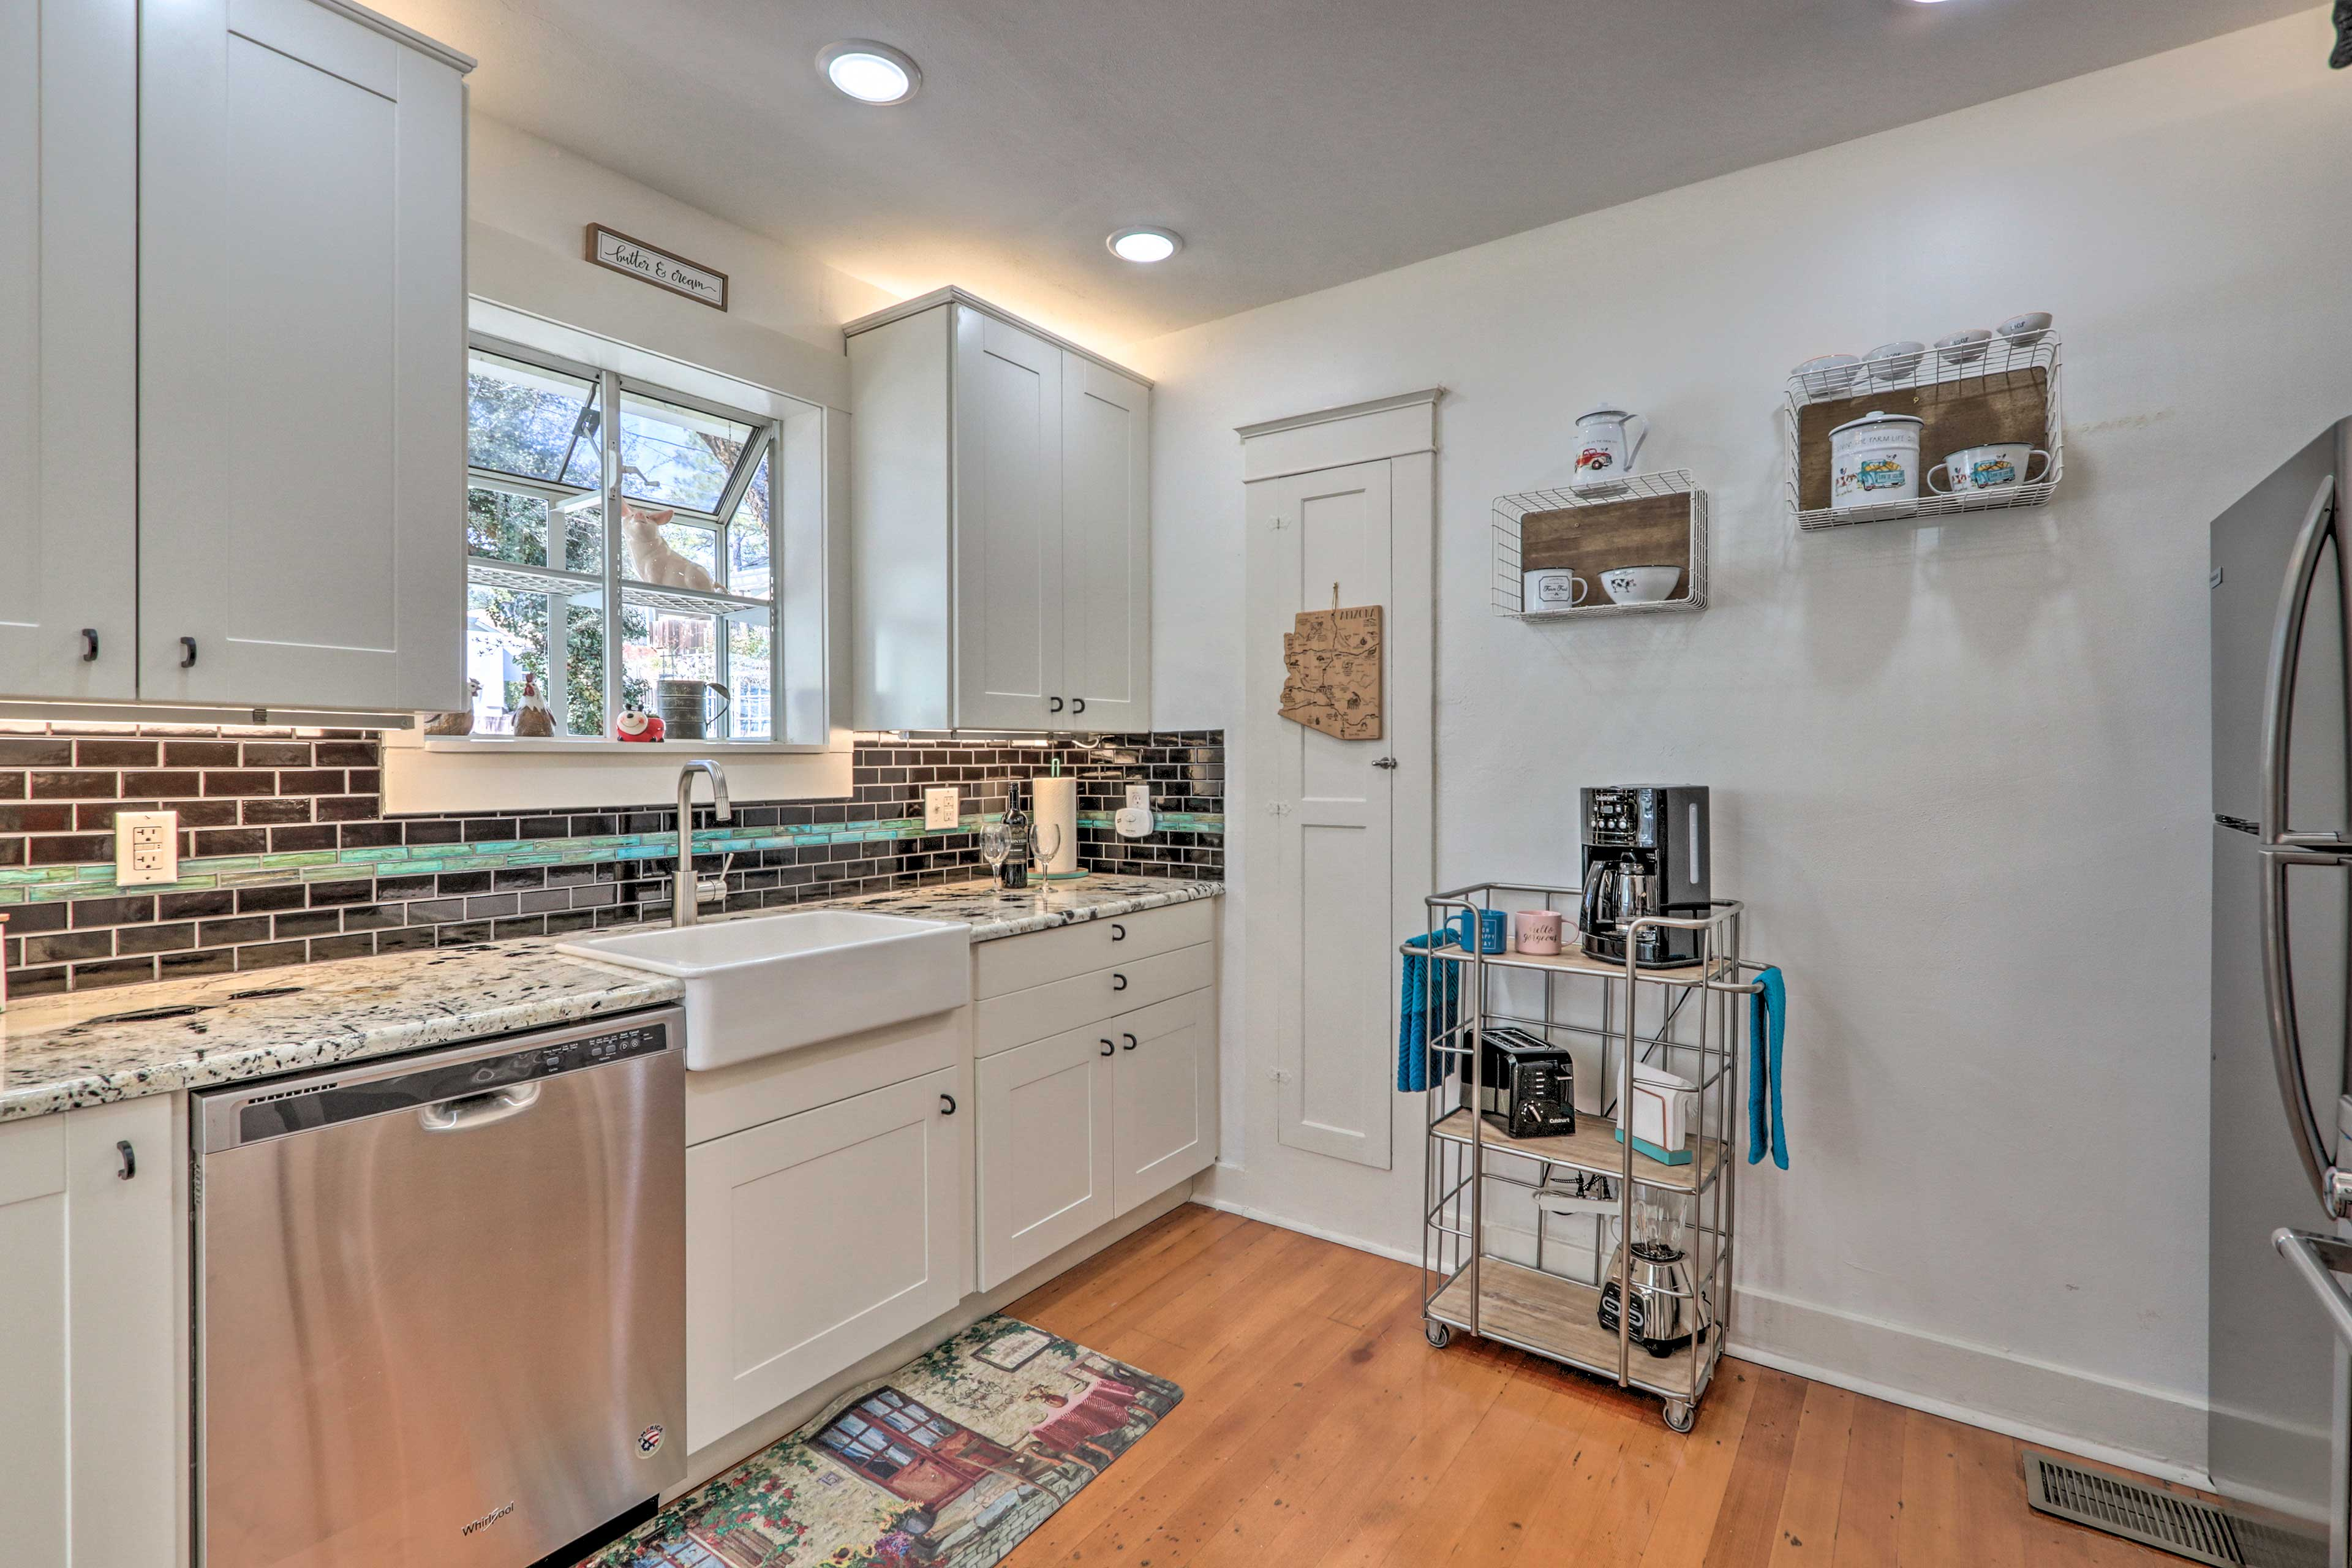 The kitchen boasts expansive countertops and stainless steel appliances.